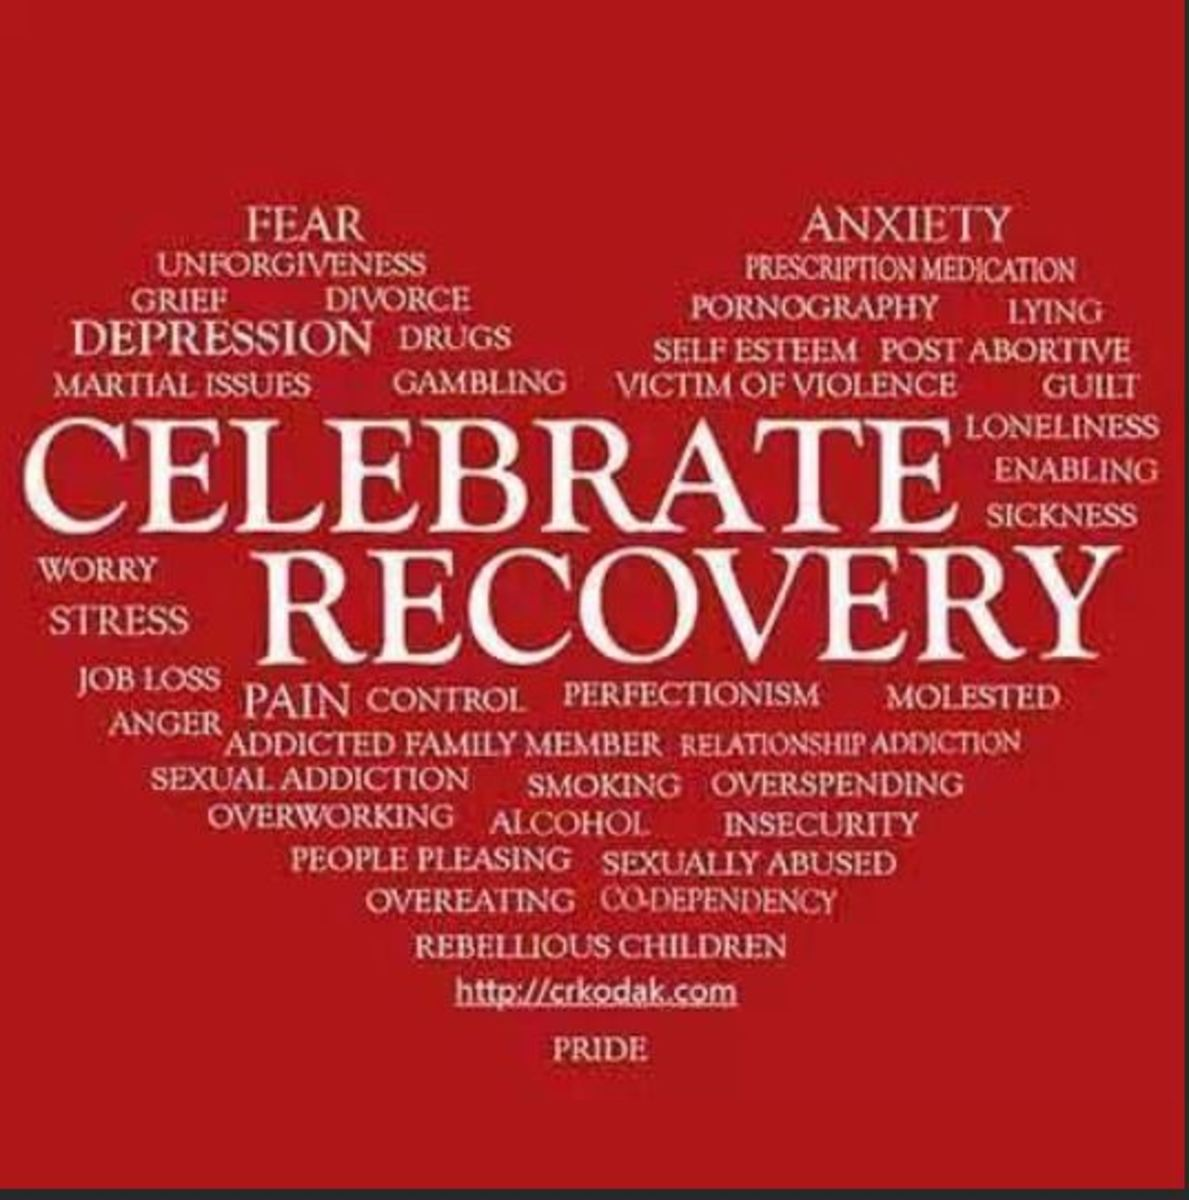 What Does It Means to Celebrate Recovery?